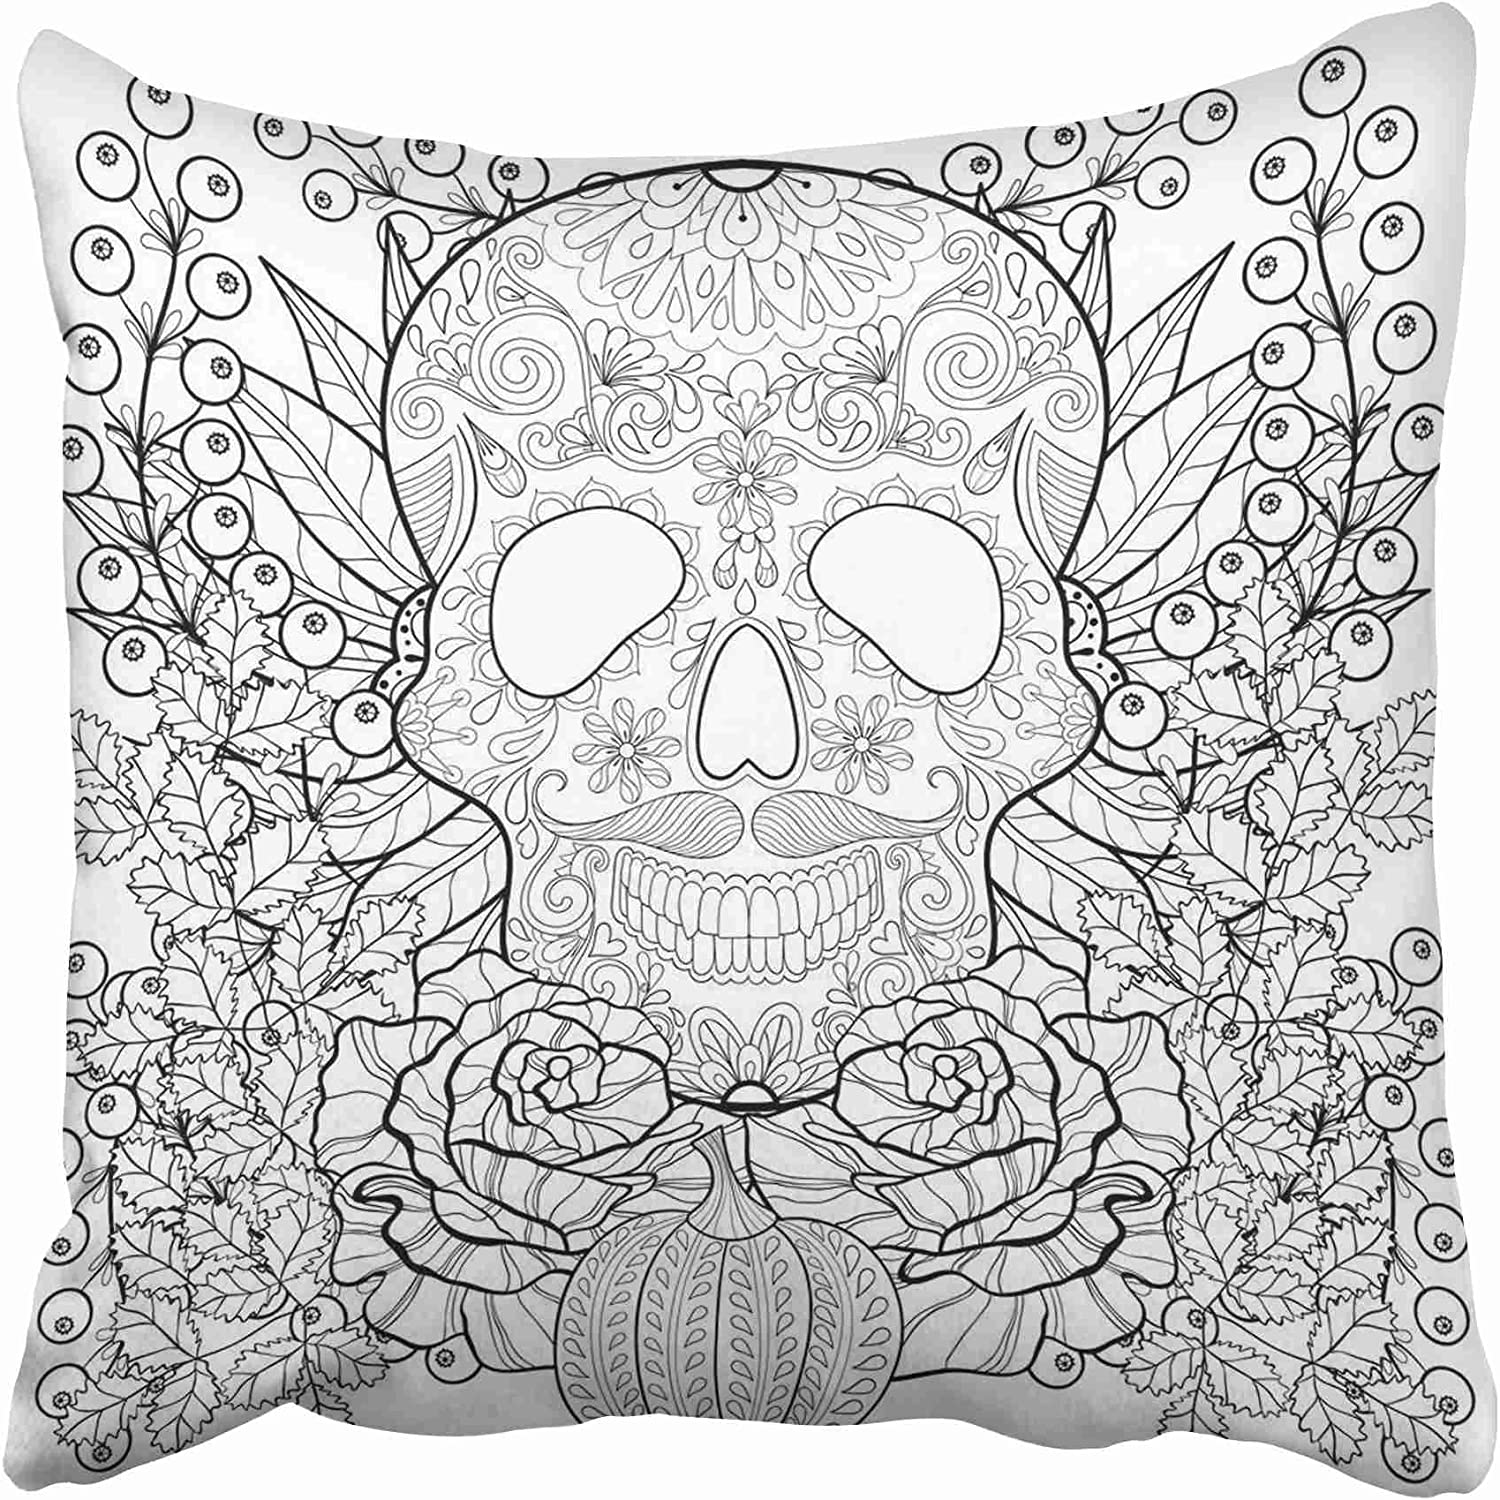 Amazon Com Emvency Zentangle Skull With Pumpkin Rose Sunflower For Halloween Freehand Sketch For Adult Coloring Page Throw Pillow Covers 20x20 Inch Decorative Cover Pillowcase Cases Case Two Side Home Kitchen